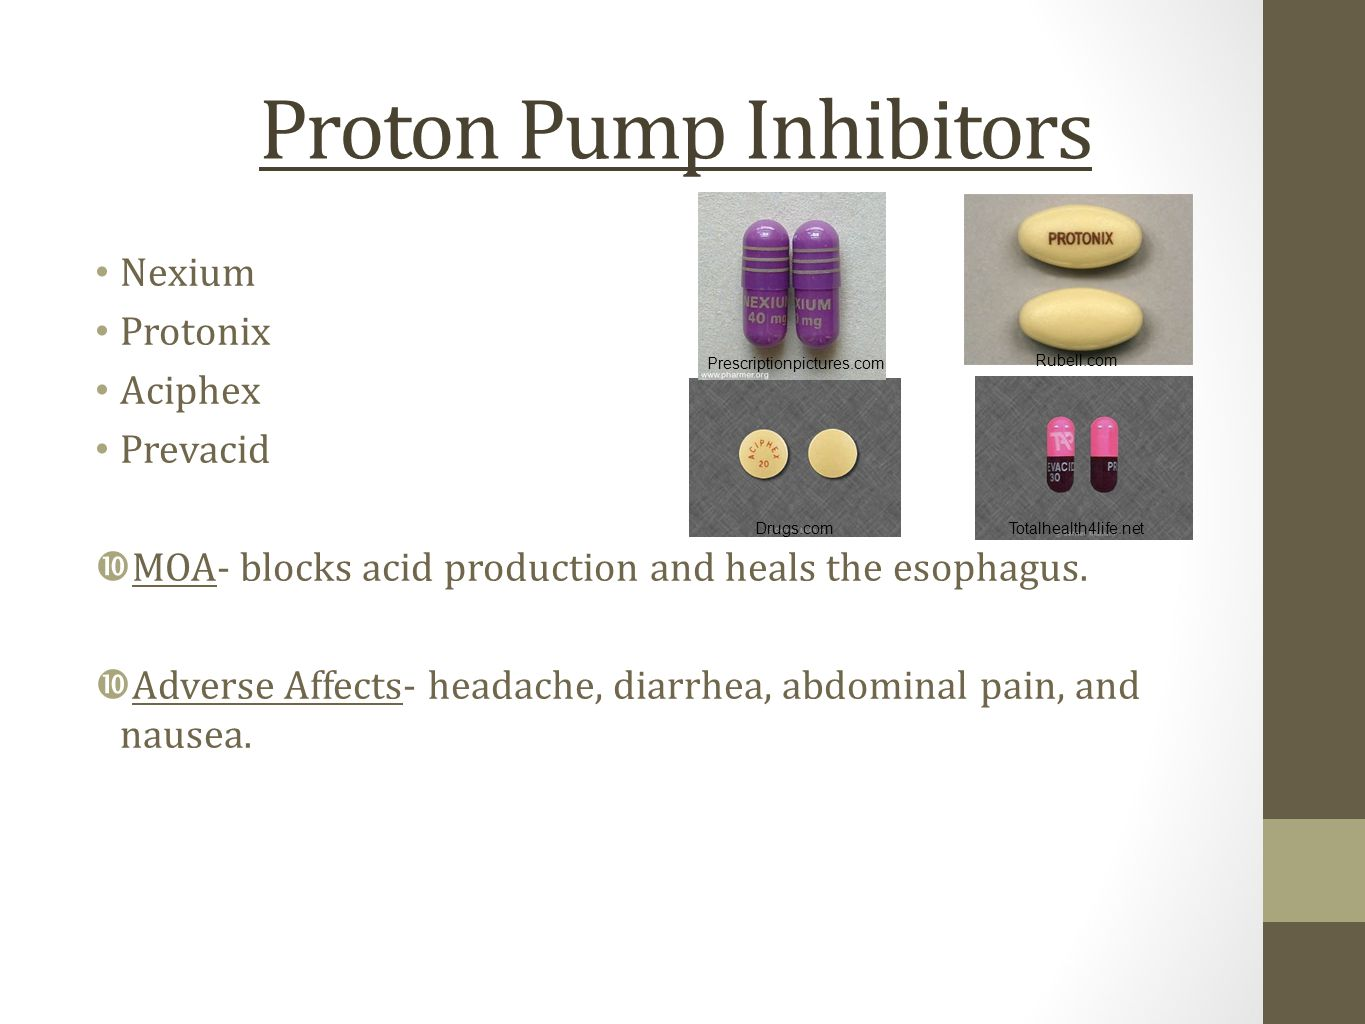 Proton Pump Inhibitors Nexium Protonix Aciphex Prevacid  MOA- blocks acid production and heals the esophagus.